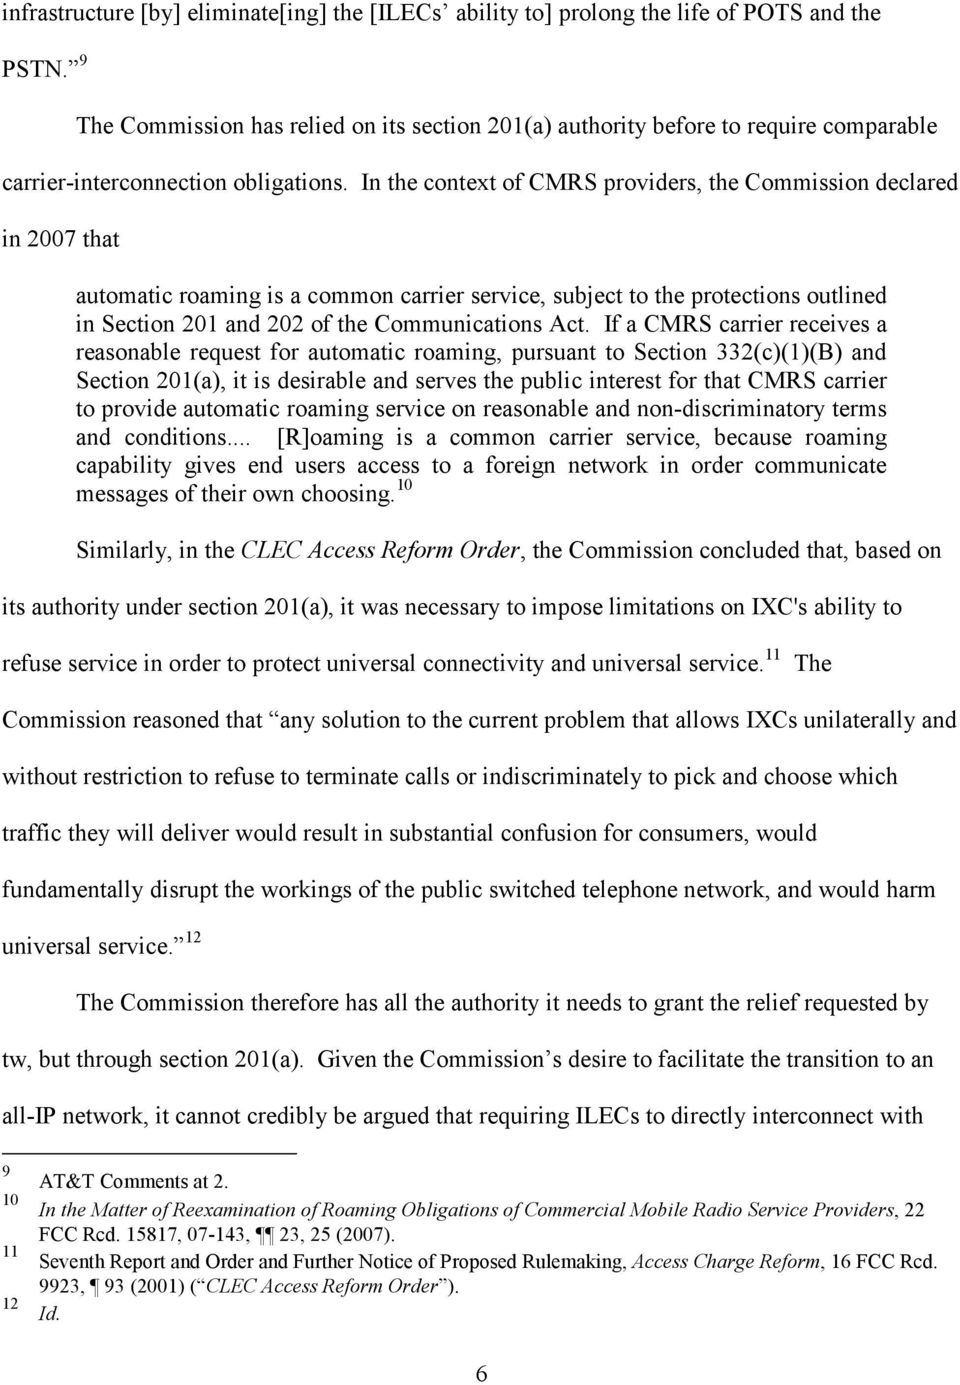 In the context of CMRS providers, the Commission declared in 2007 that automatic roaming is a common carrier service, subject to the protections outlined in Section 201 and 202 of the Communications